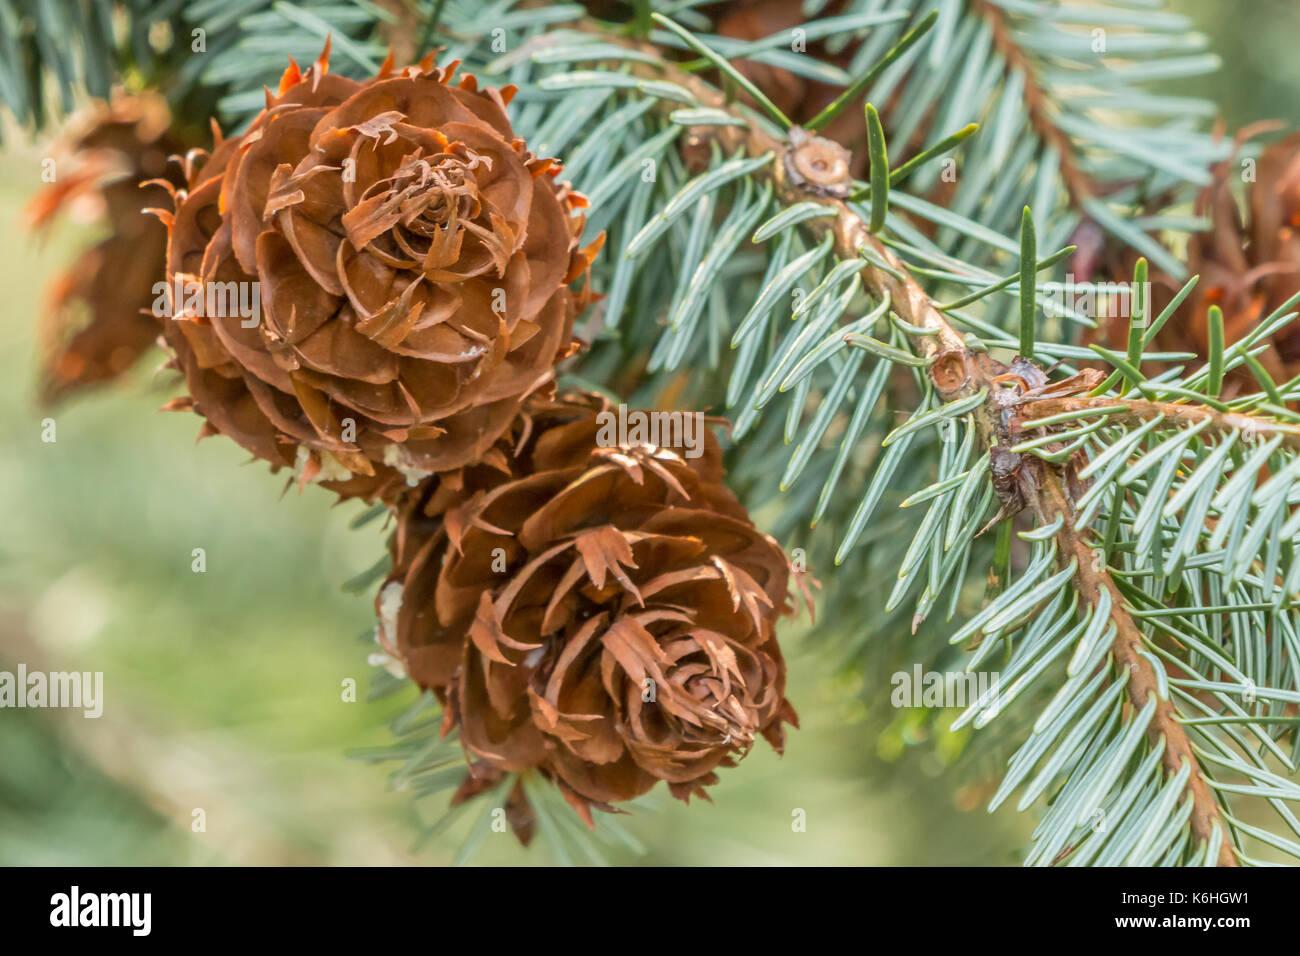 Coulter Pine Tree Stock Photos & Coulter Pine Tree Stock Images - Alamy